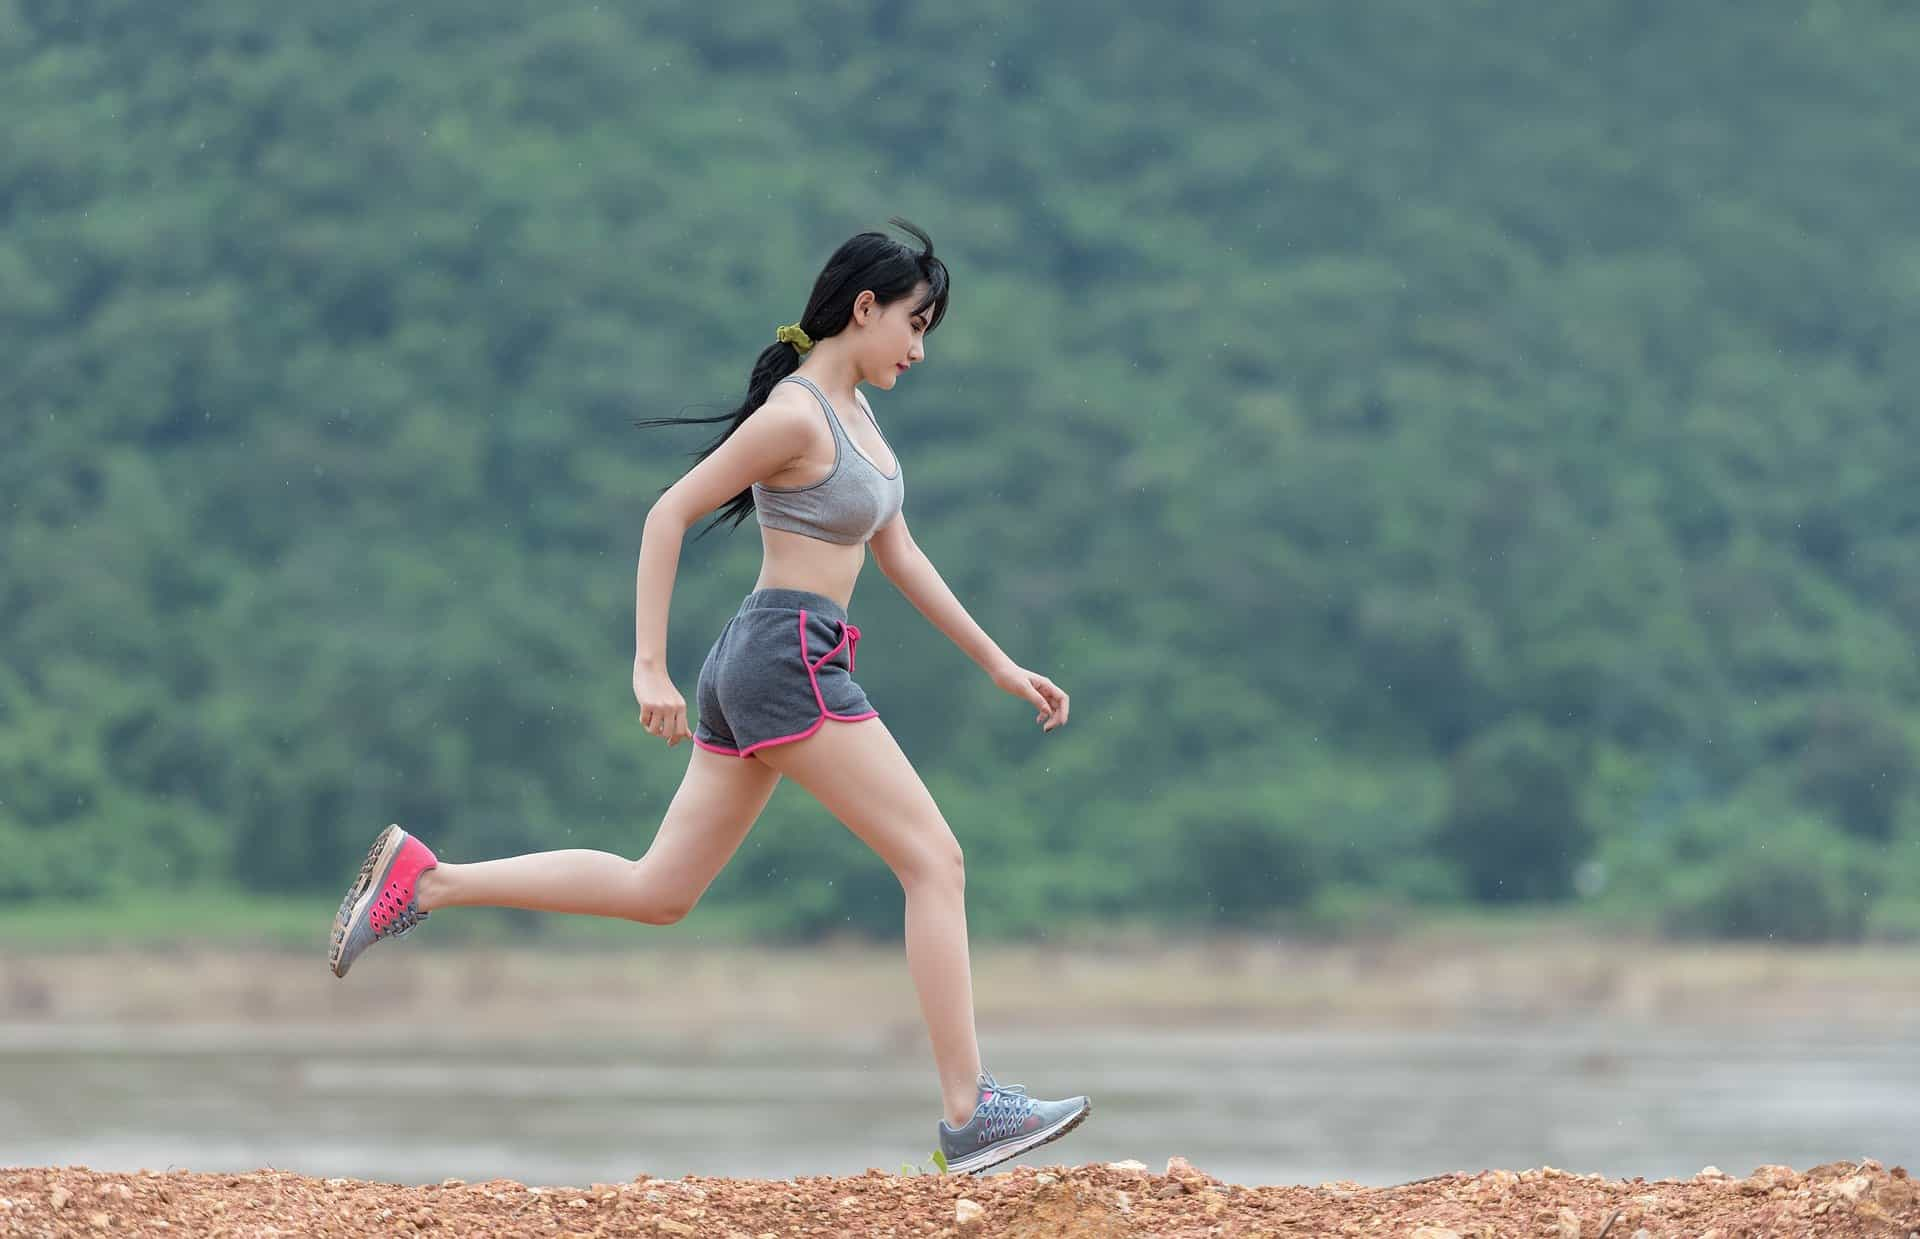 4 Best Exercises to Loss Weight, According to Studies